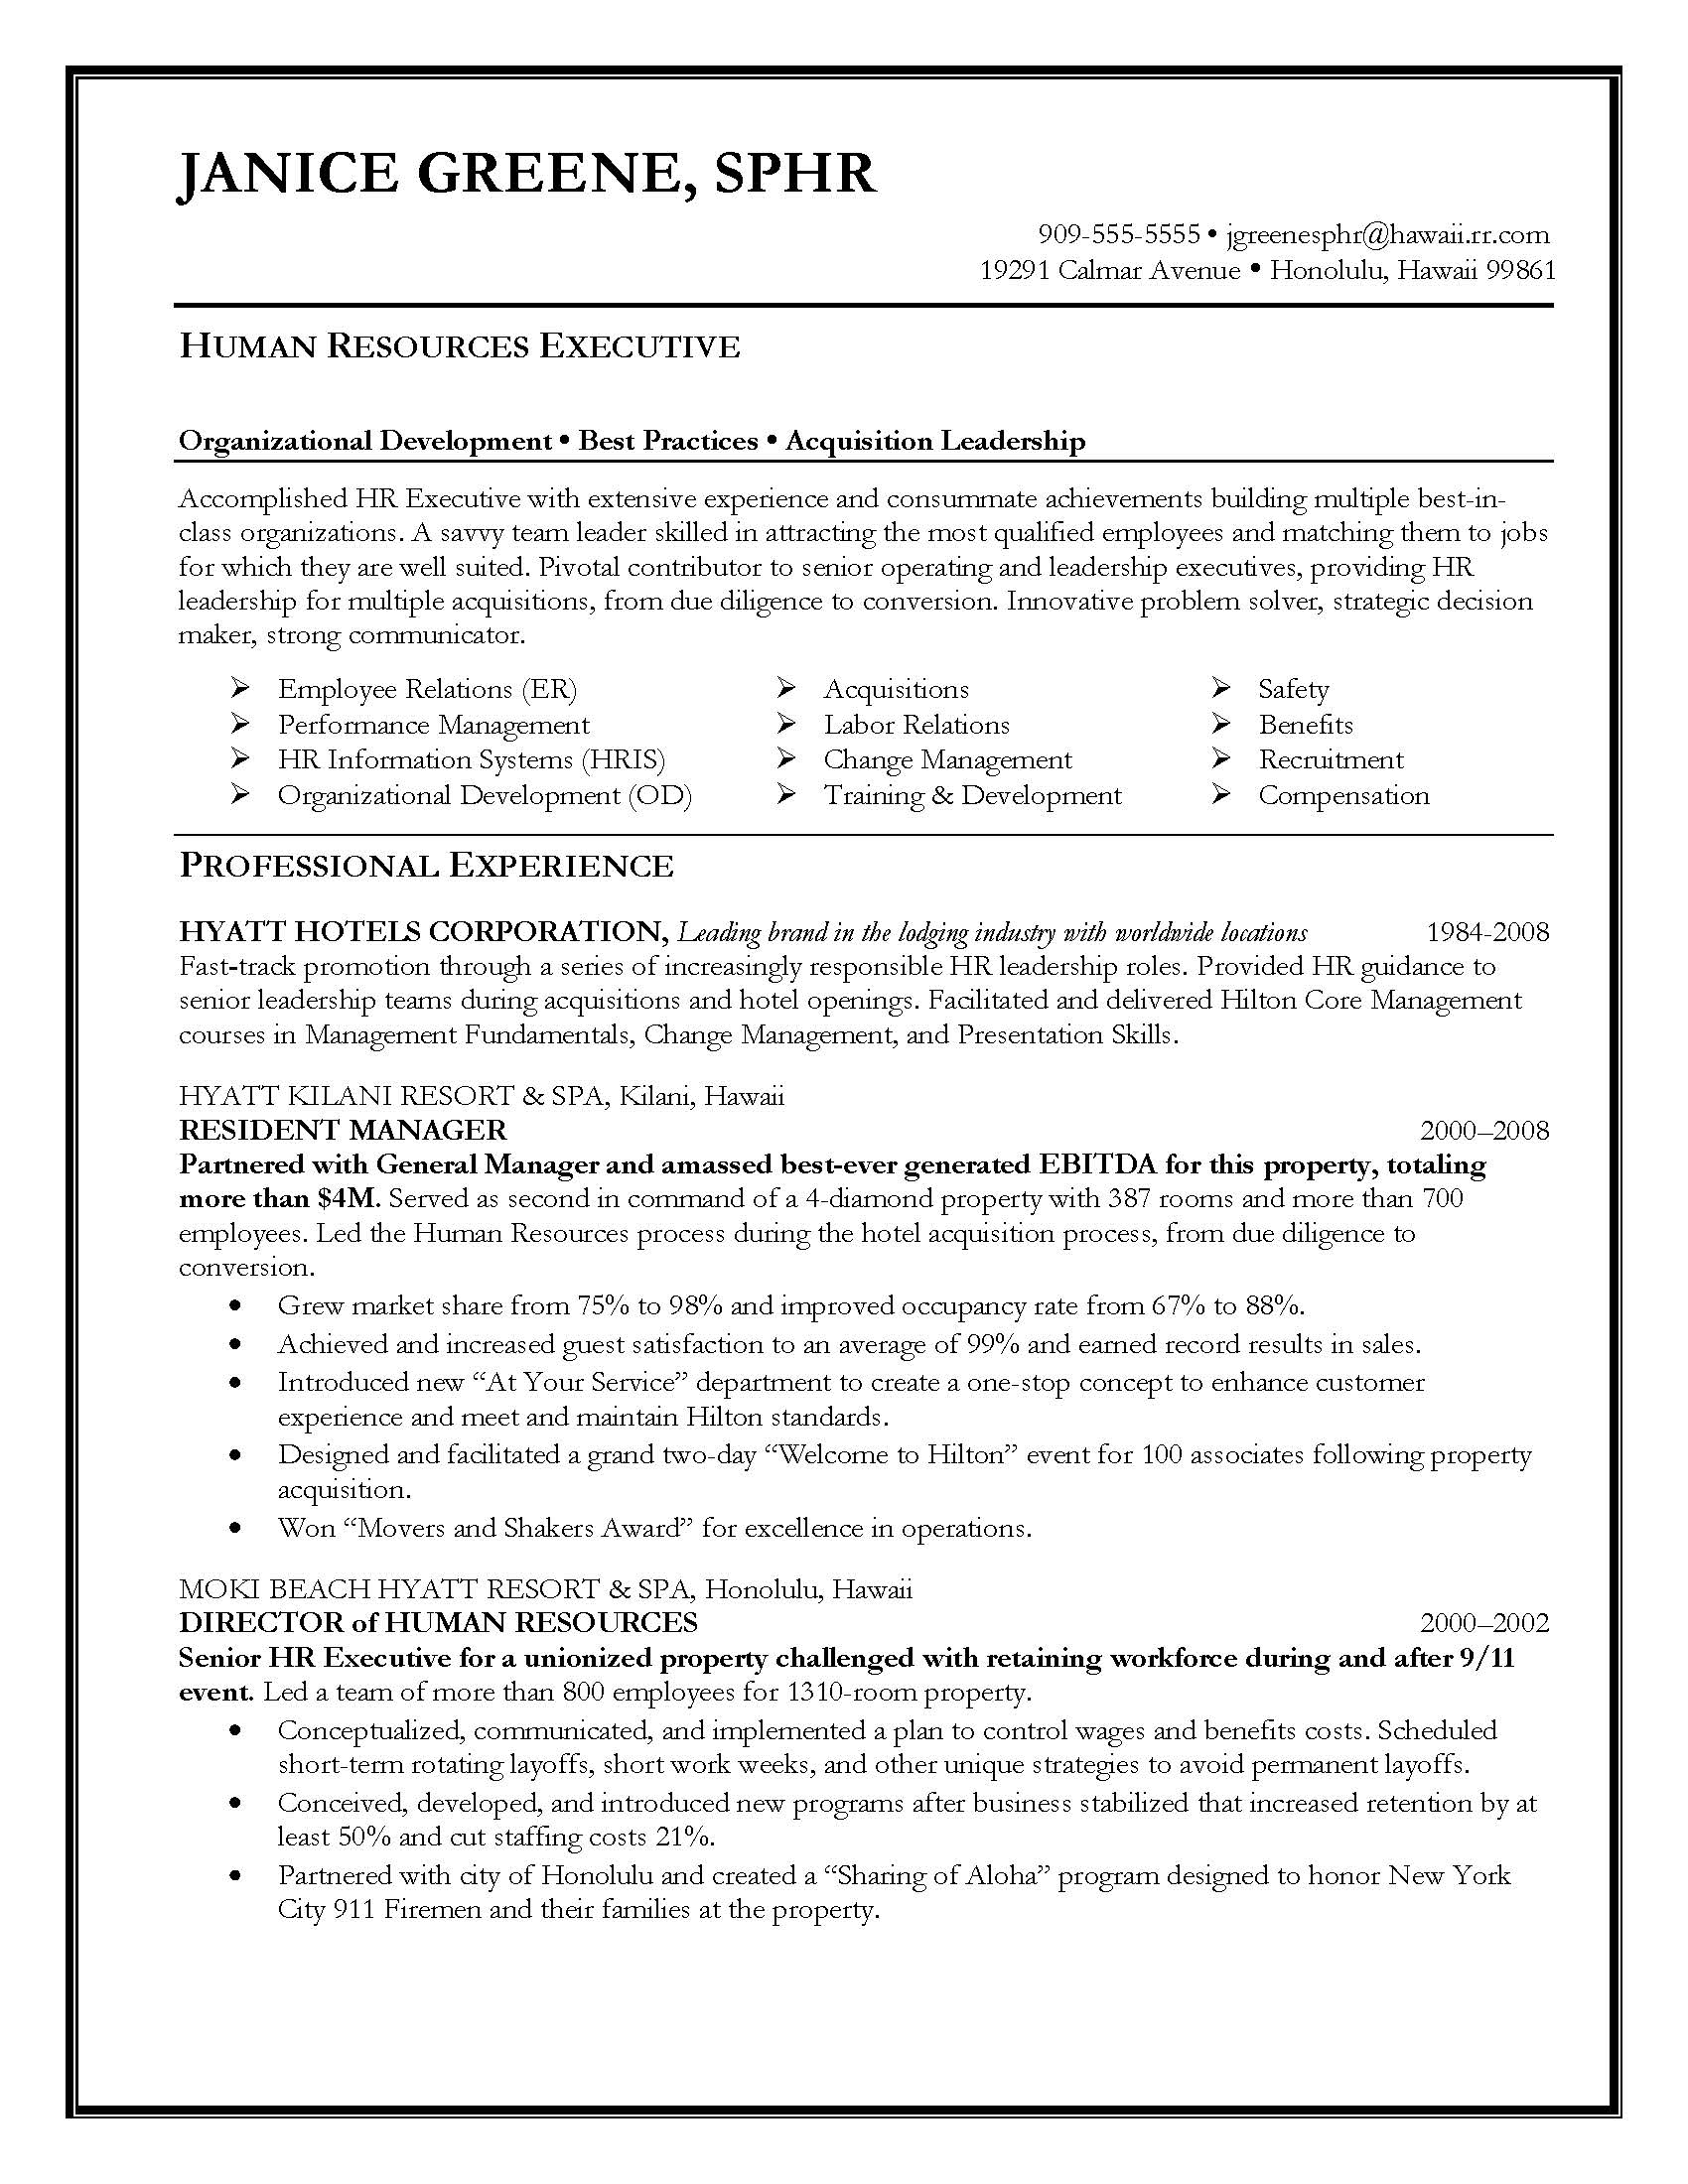 human resource manager resume sample human resources executive resume sample provided elite manager examples and